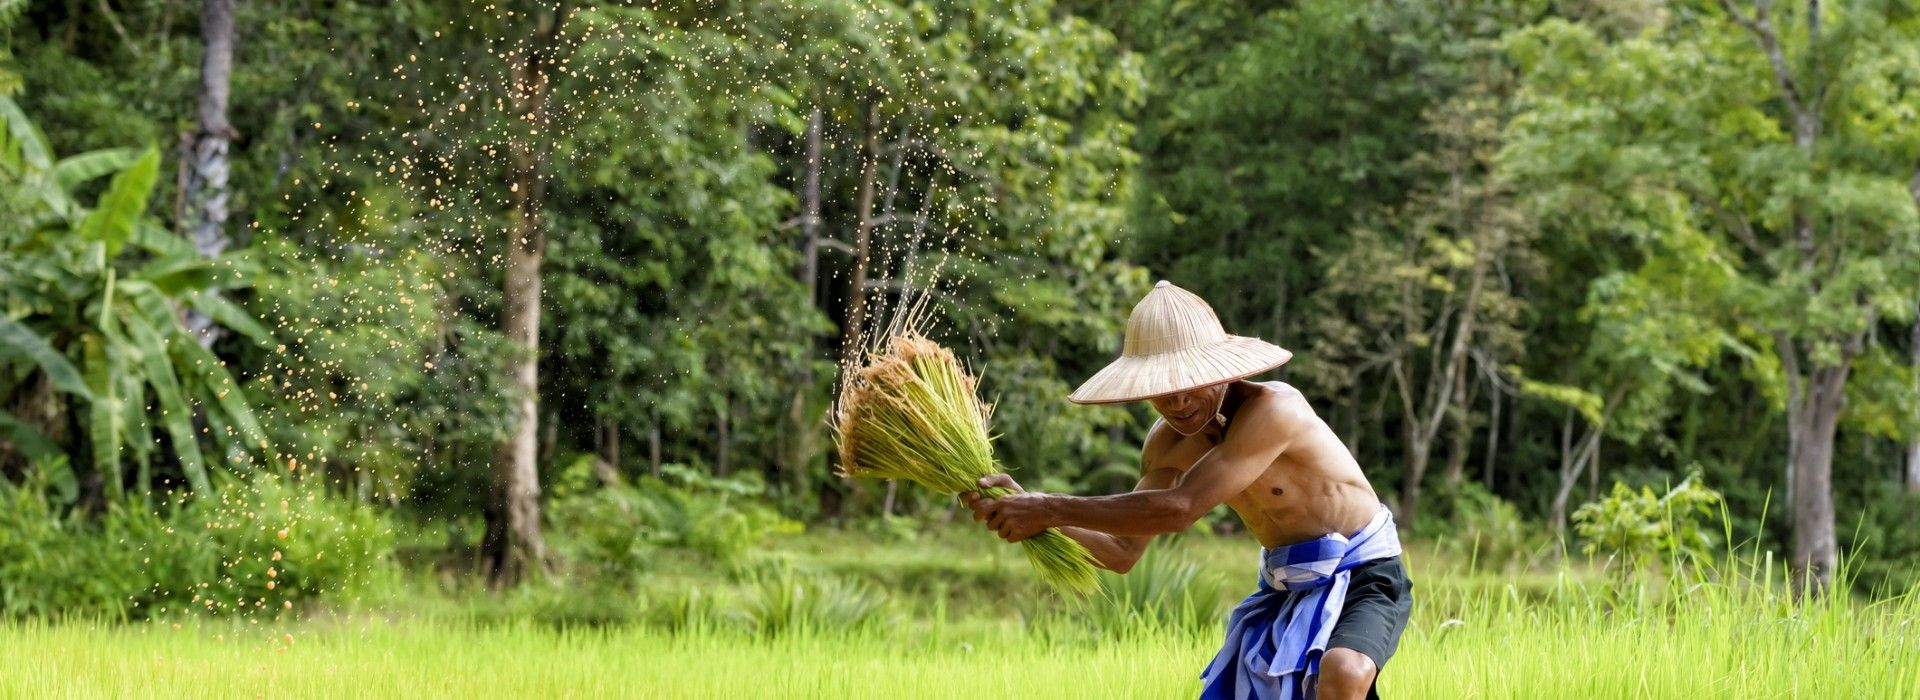 Countryside and village visits Tours in South East Asia